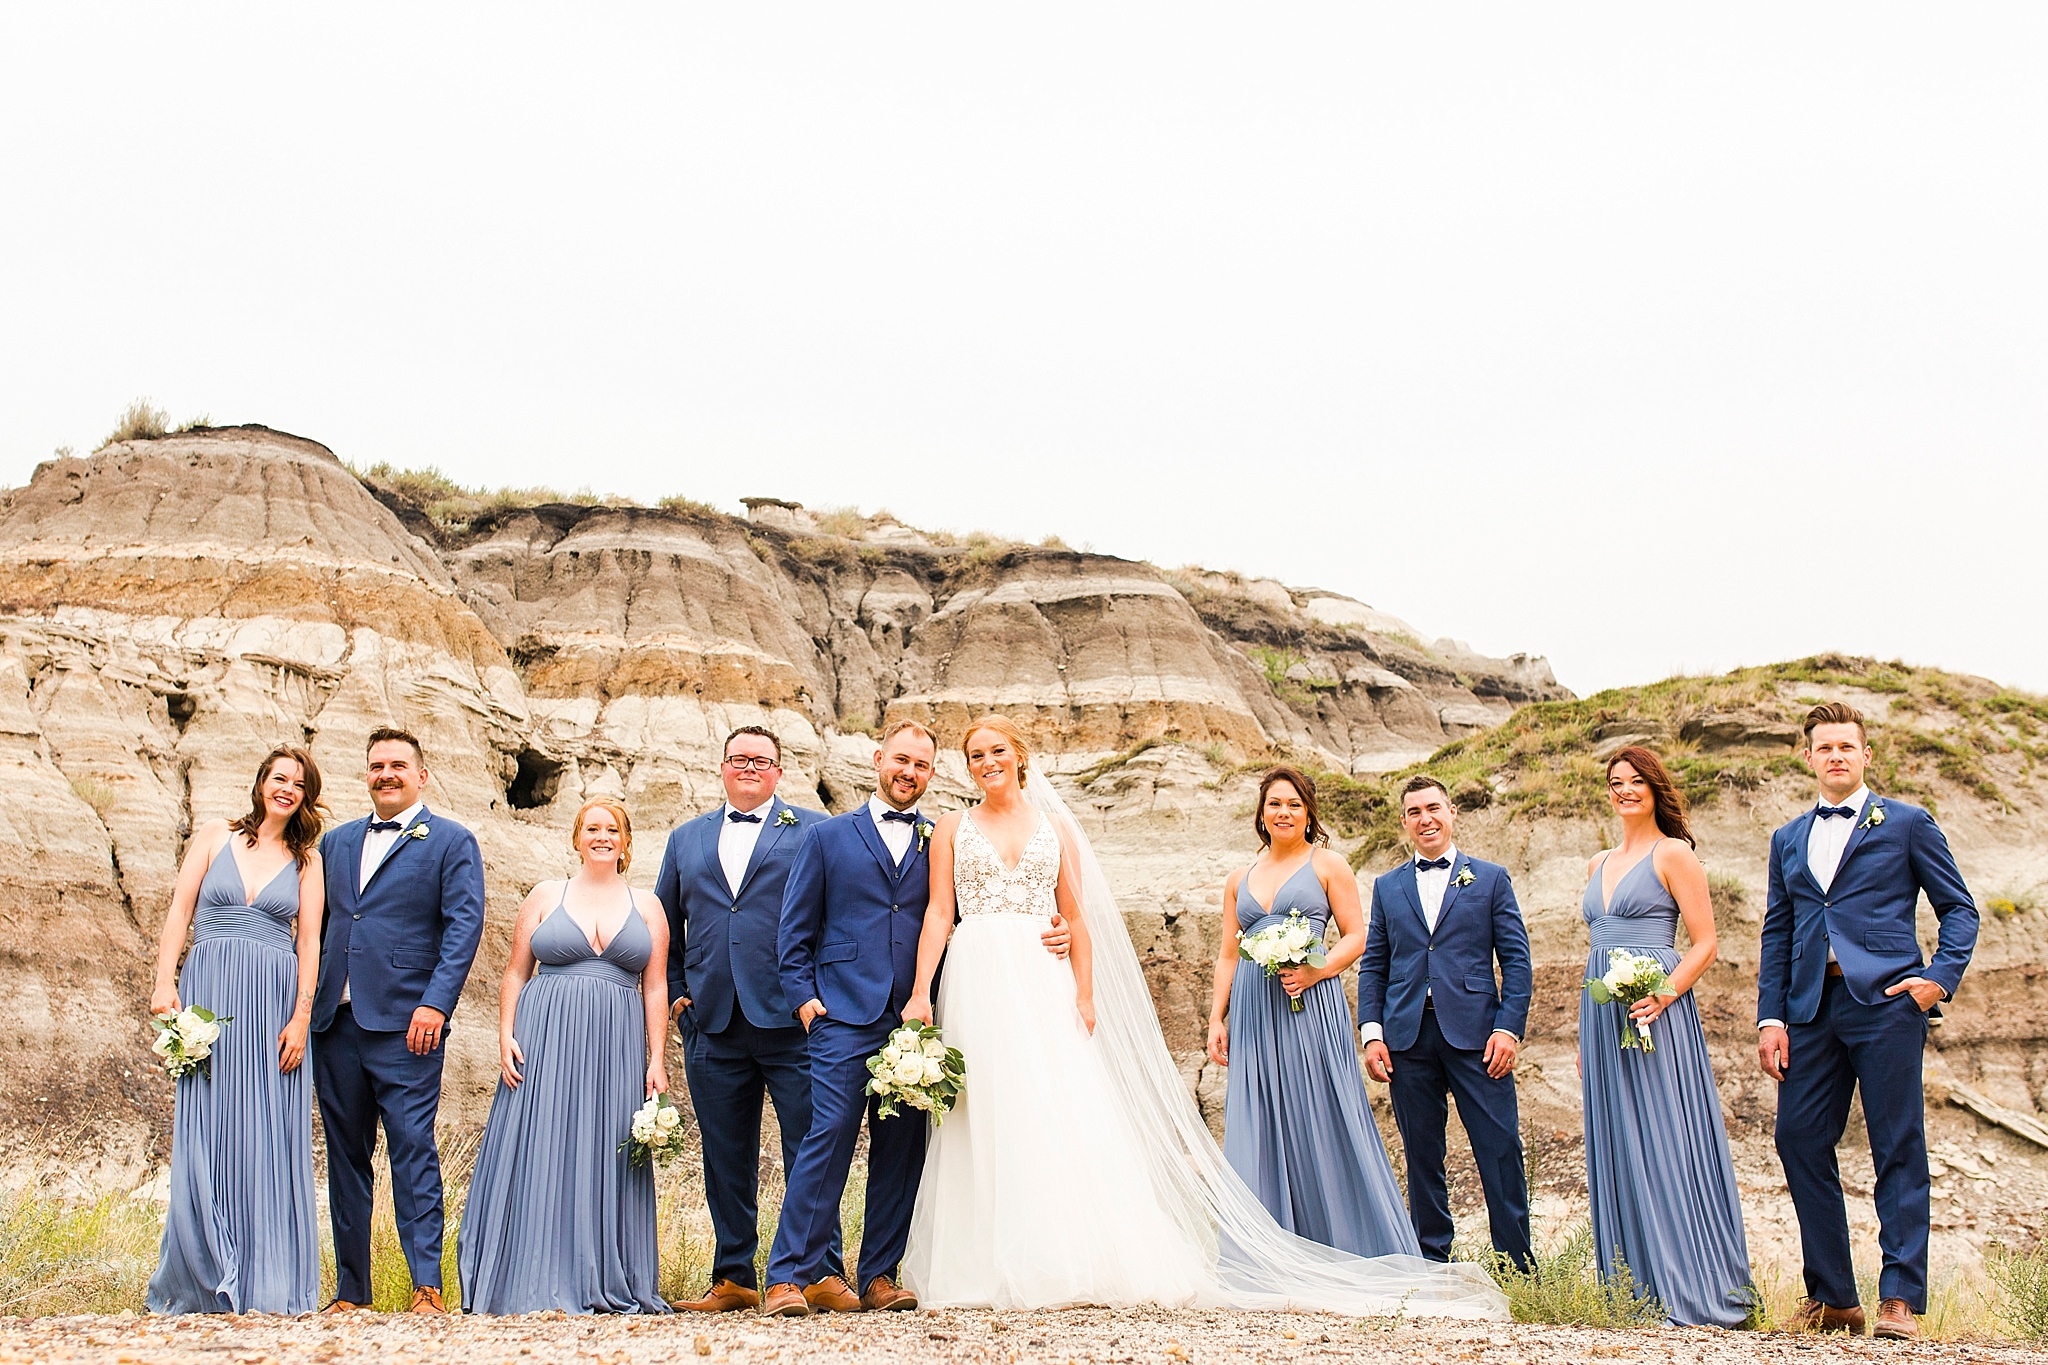 drumheller wedding127.JPG